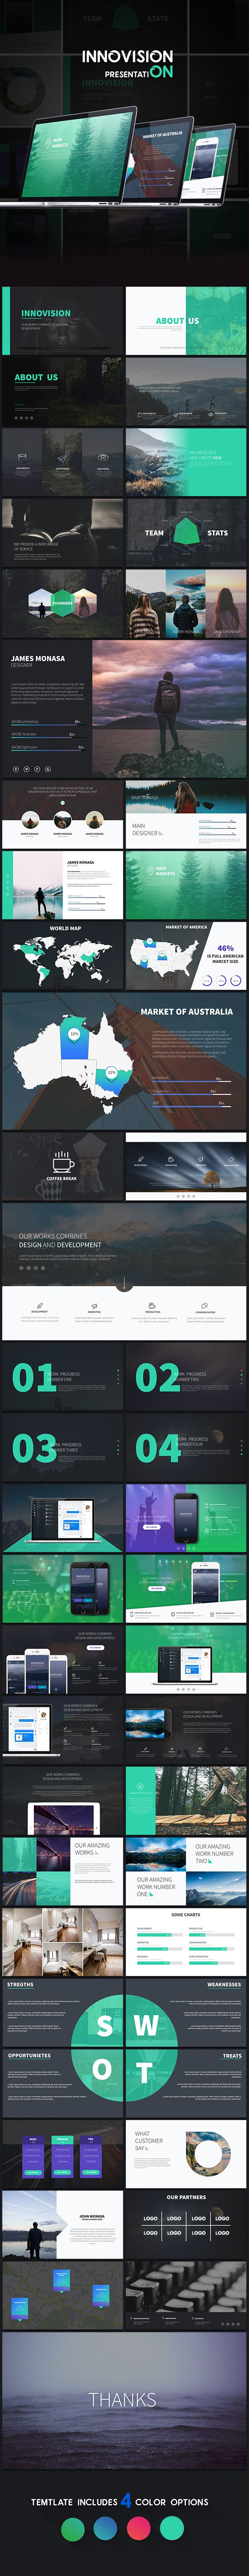 Insanely Cool Innovision - Powerpoint Presentation Powerpoint PPTX Template • Only available here ➝ http://graphicriver.net/item/innovision-powerpoint-presentation/16147037?ref=pxcr